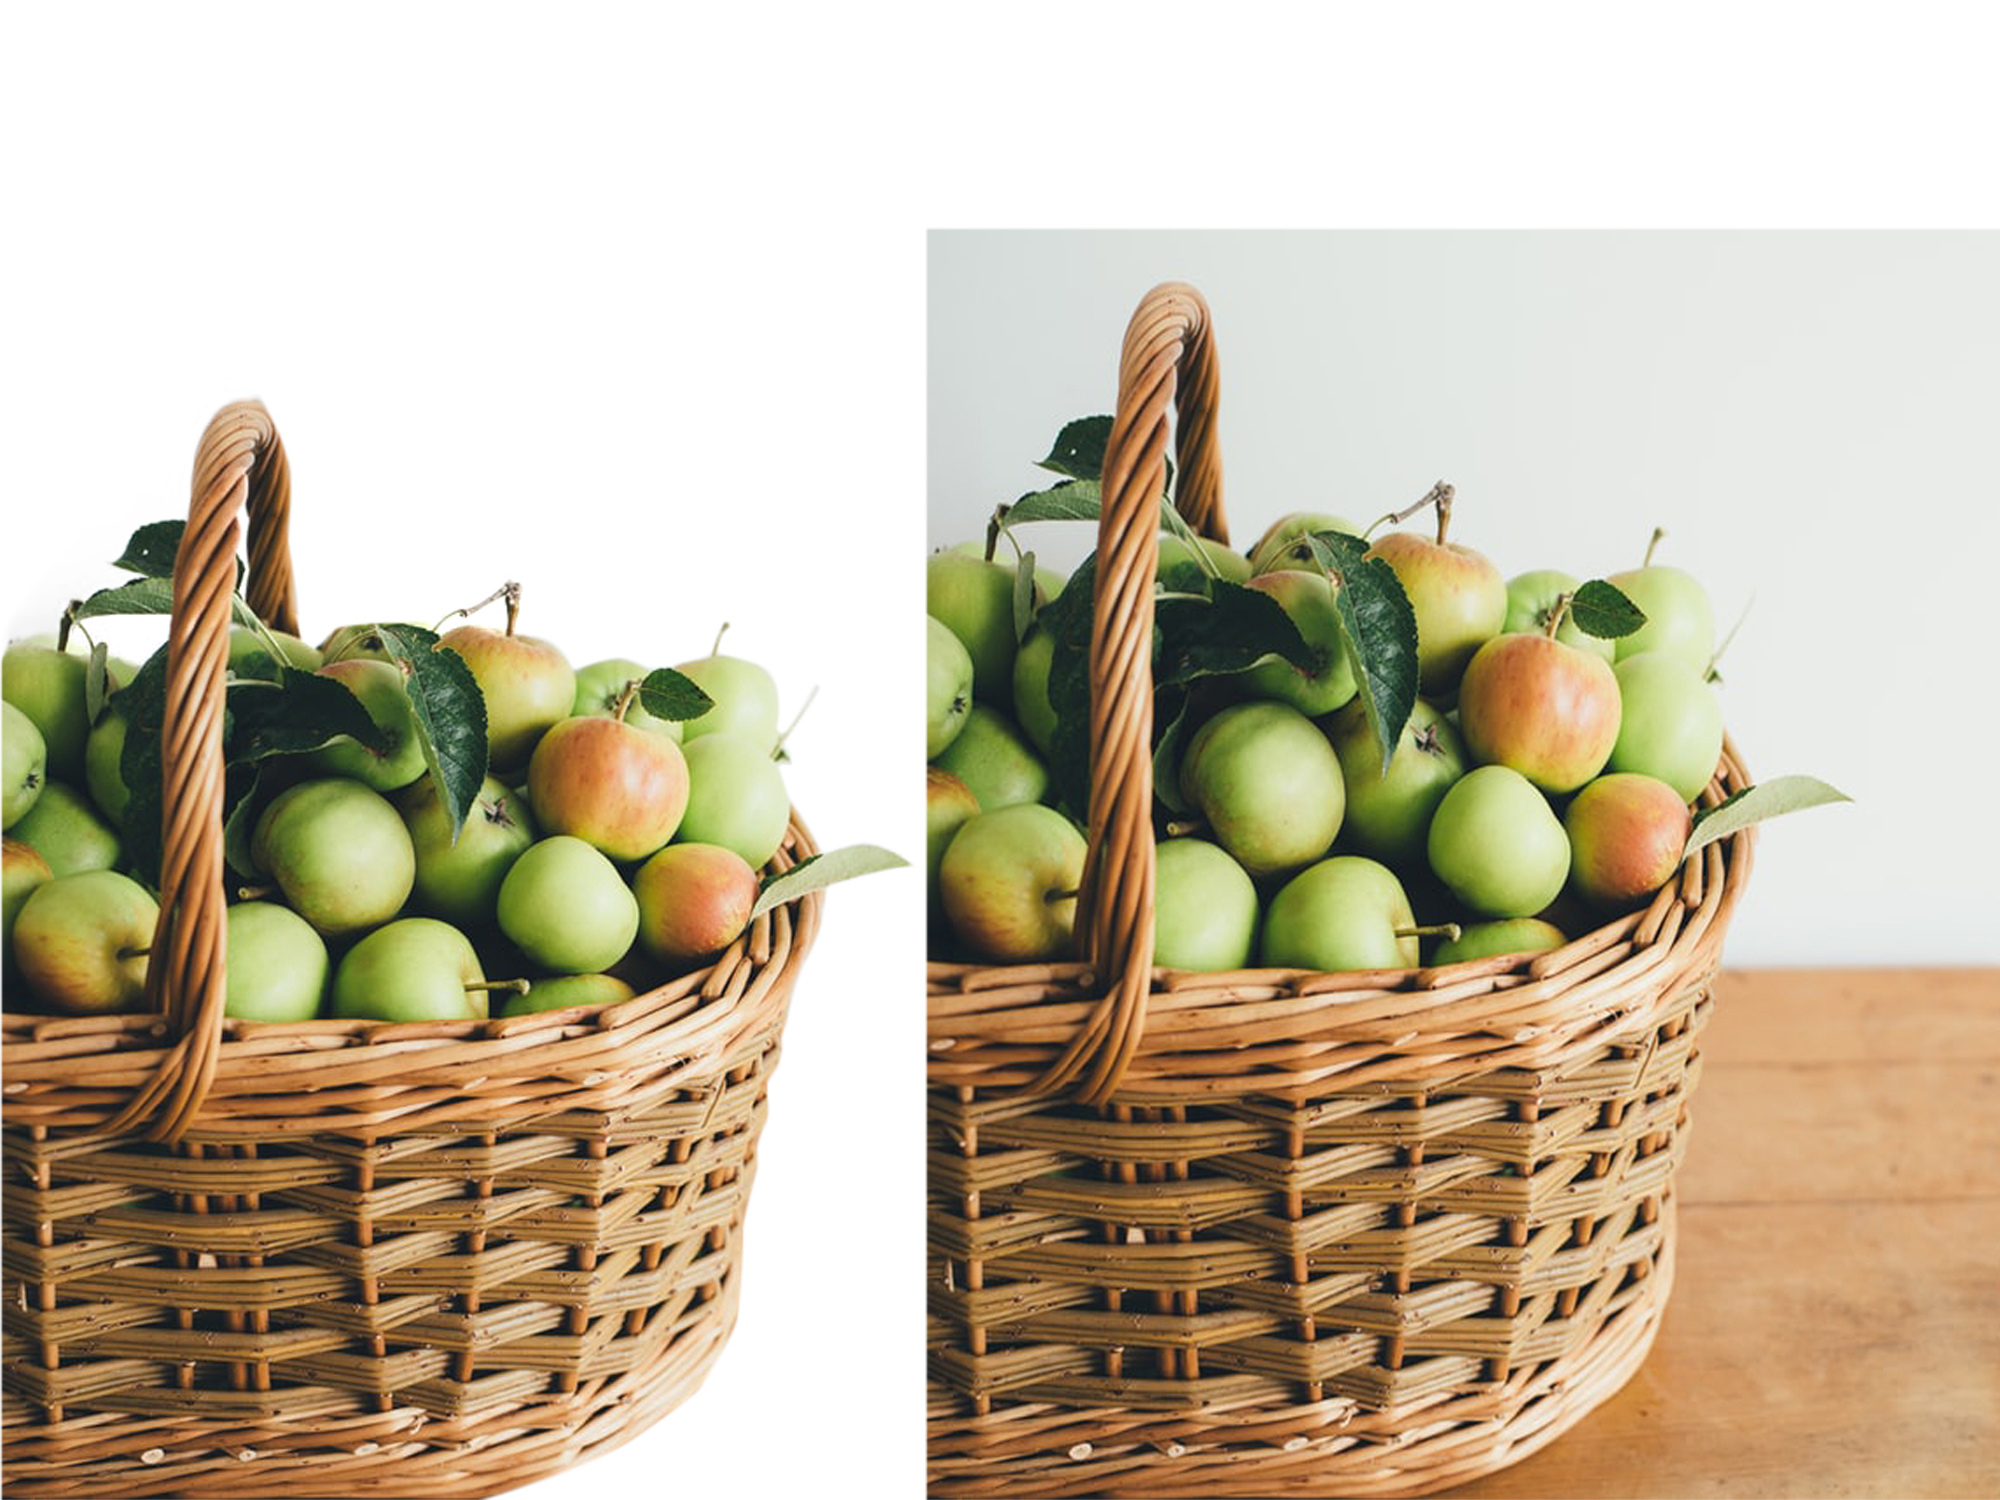 I will provide you any kind of background remove